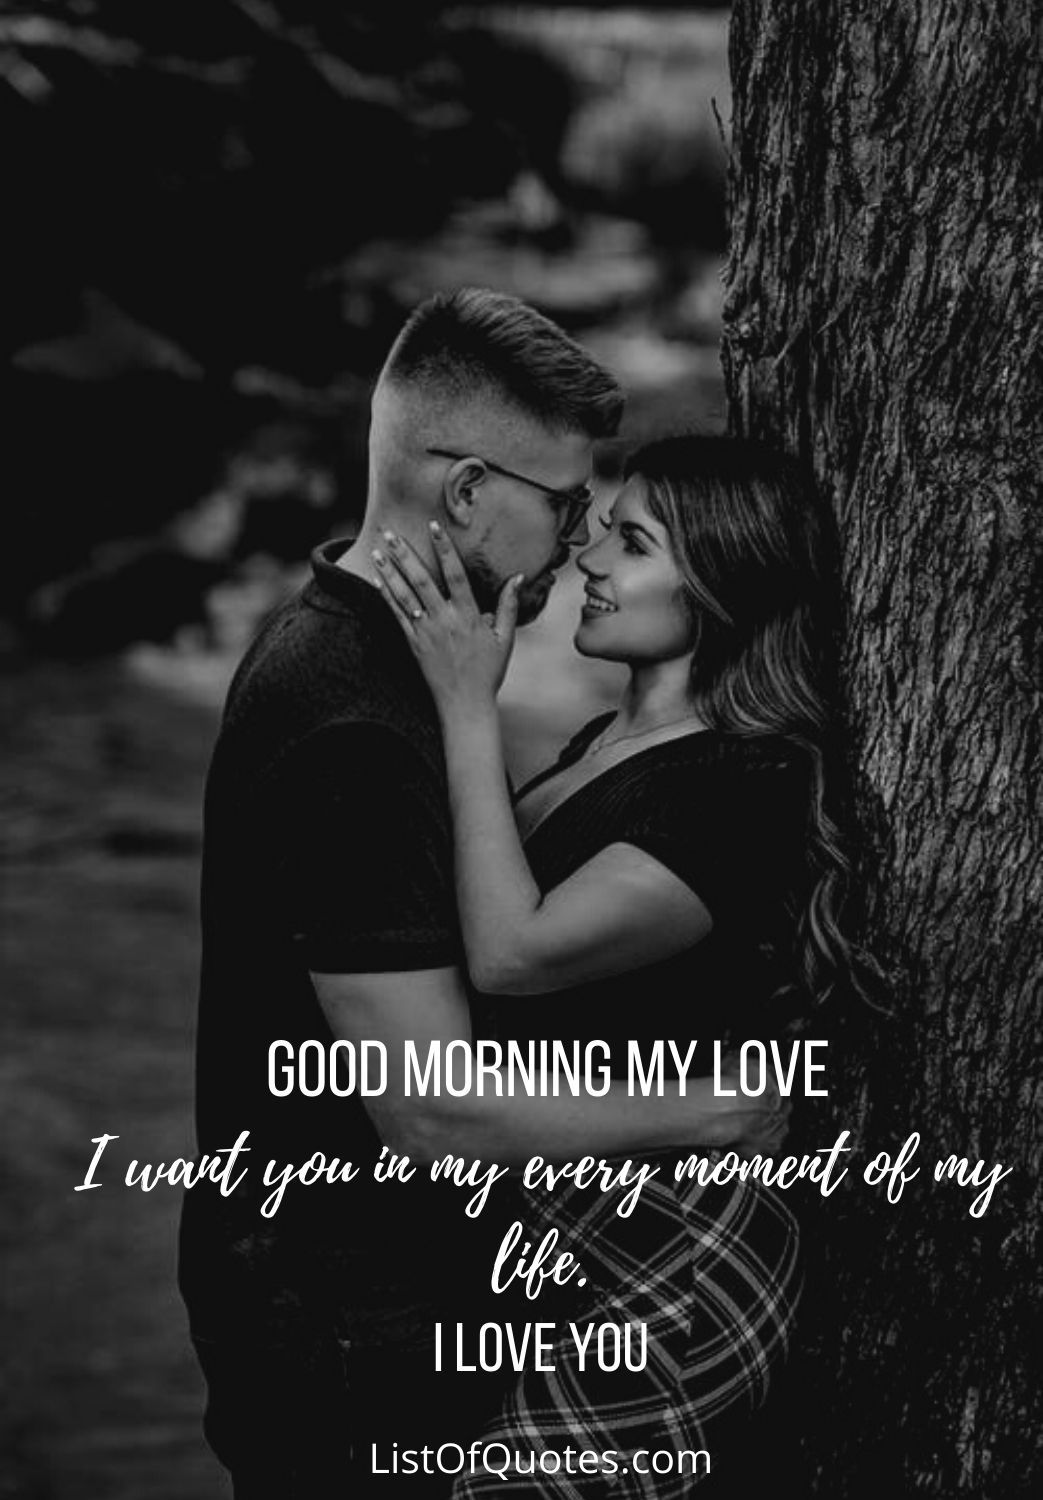 romantic heart touching good morning messages quotes wishes for